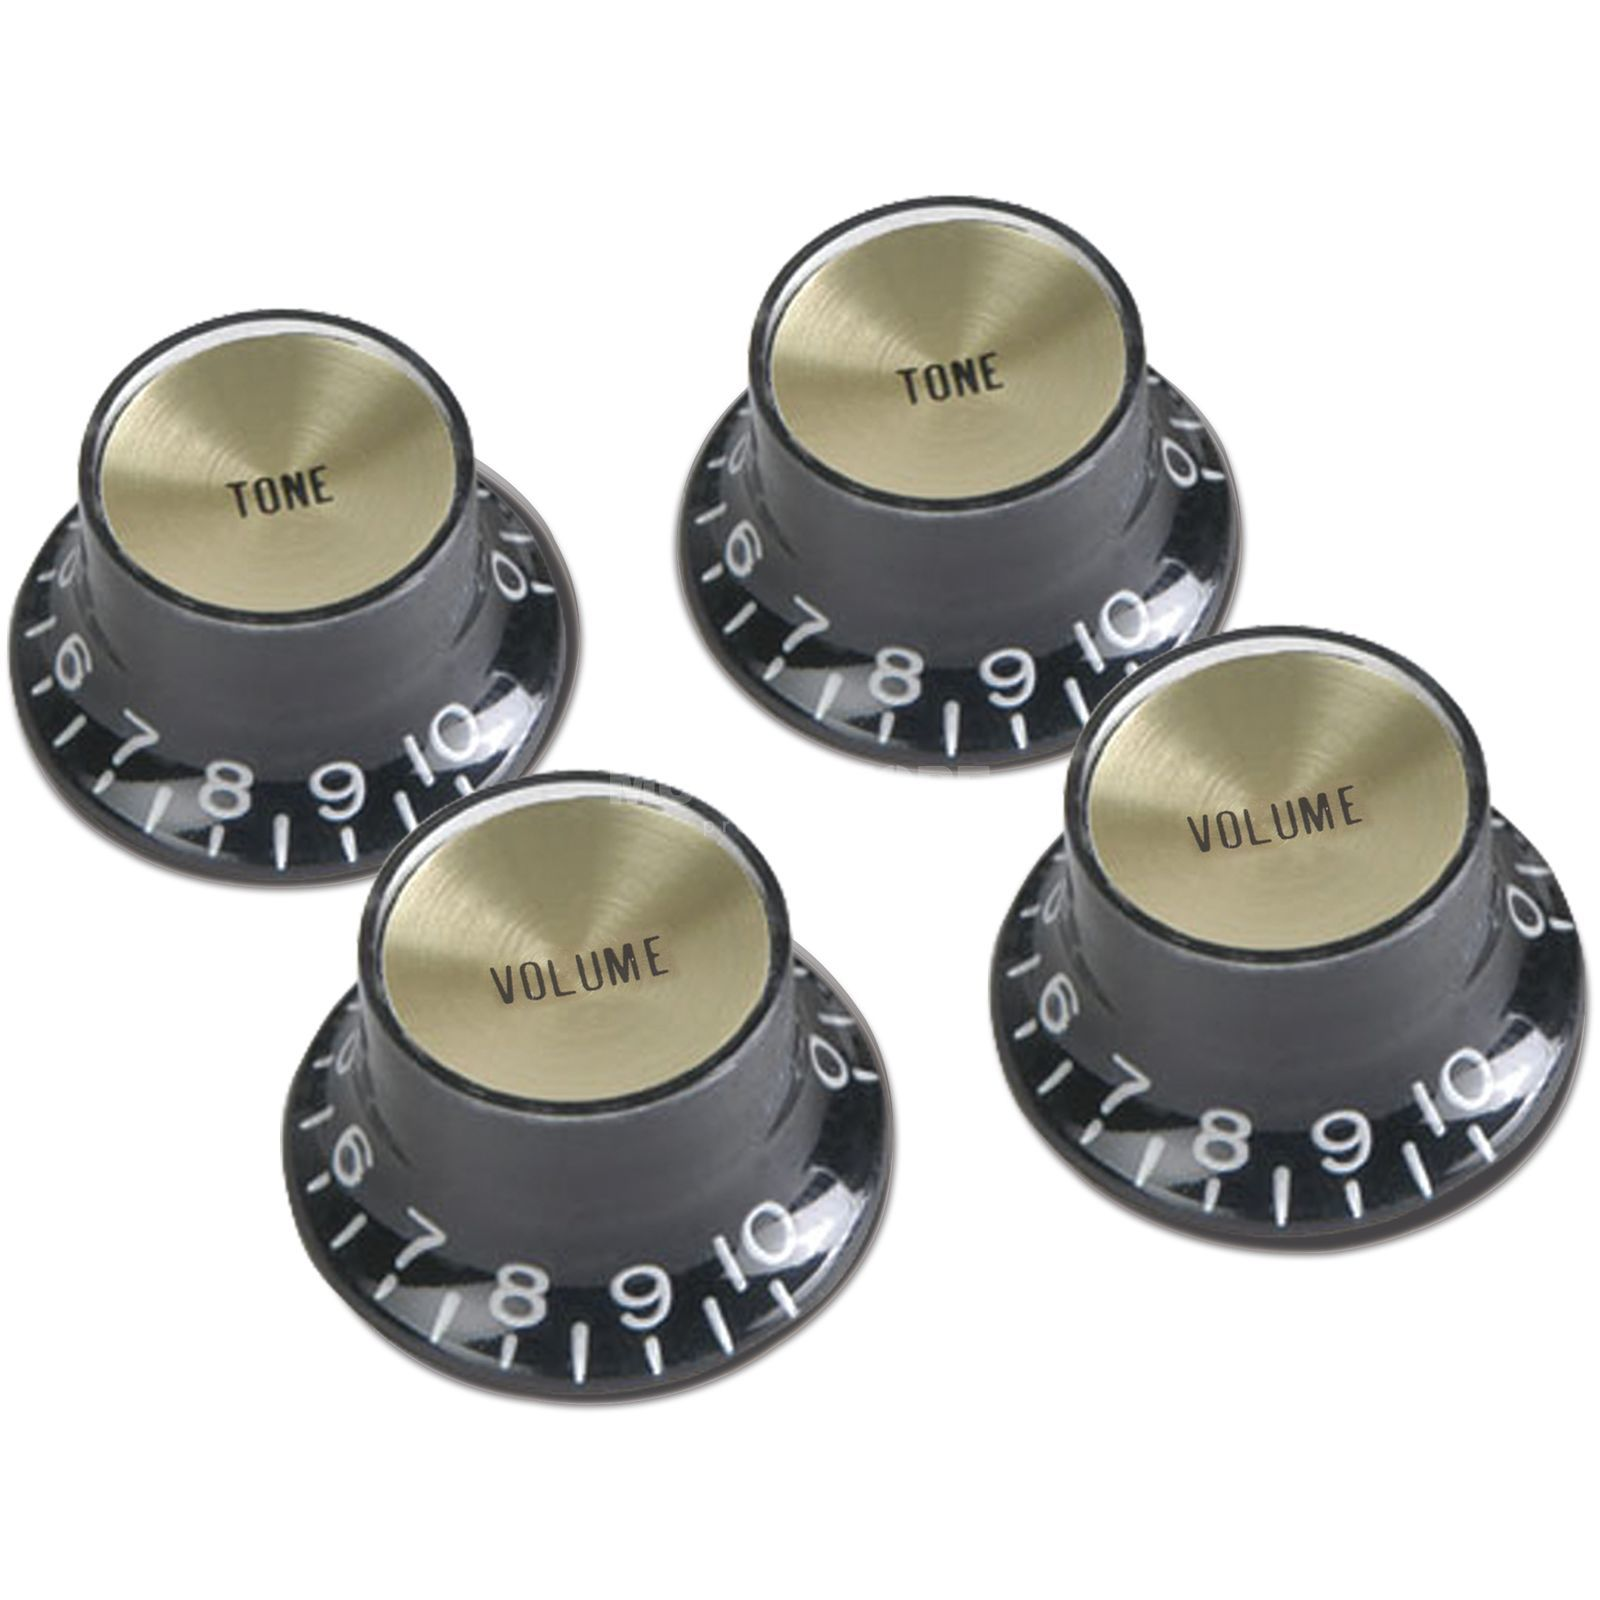 Gibson PRMK-020 Top Hat Knob Black Set 4 St Metalleinlage Gold Produktbillede